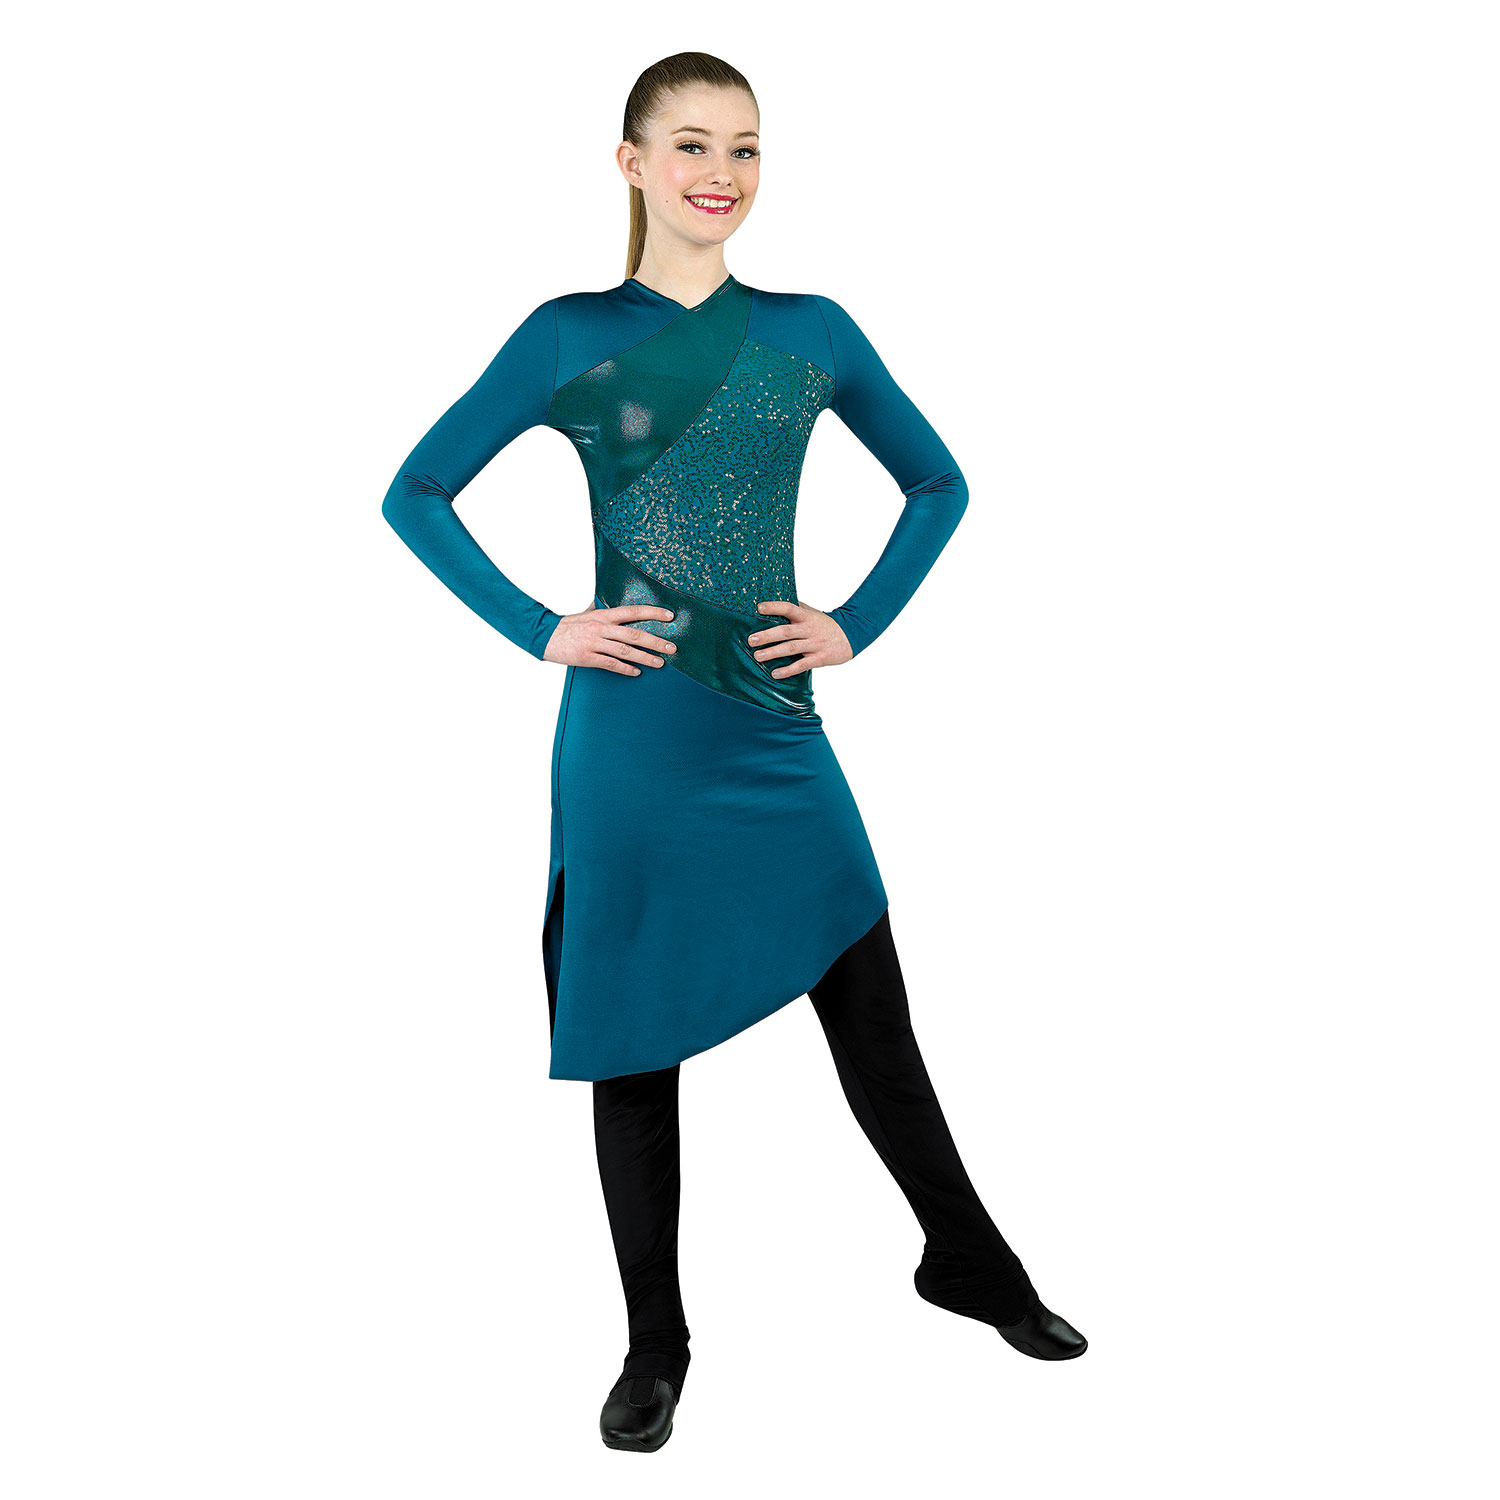 Guard Uniforms: Style 5009